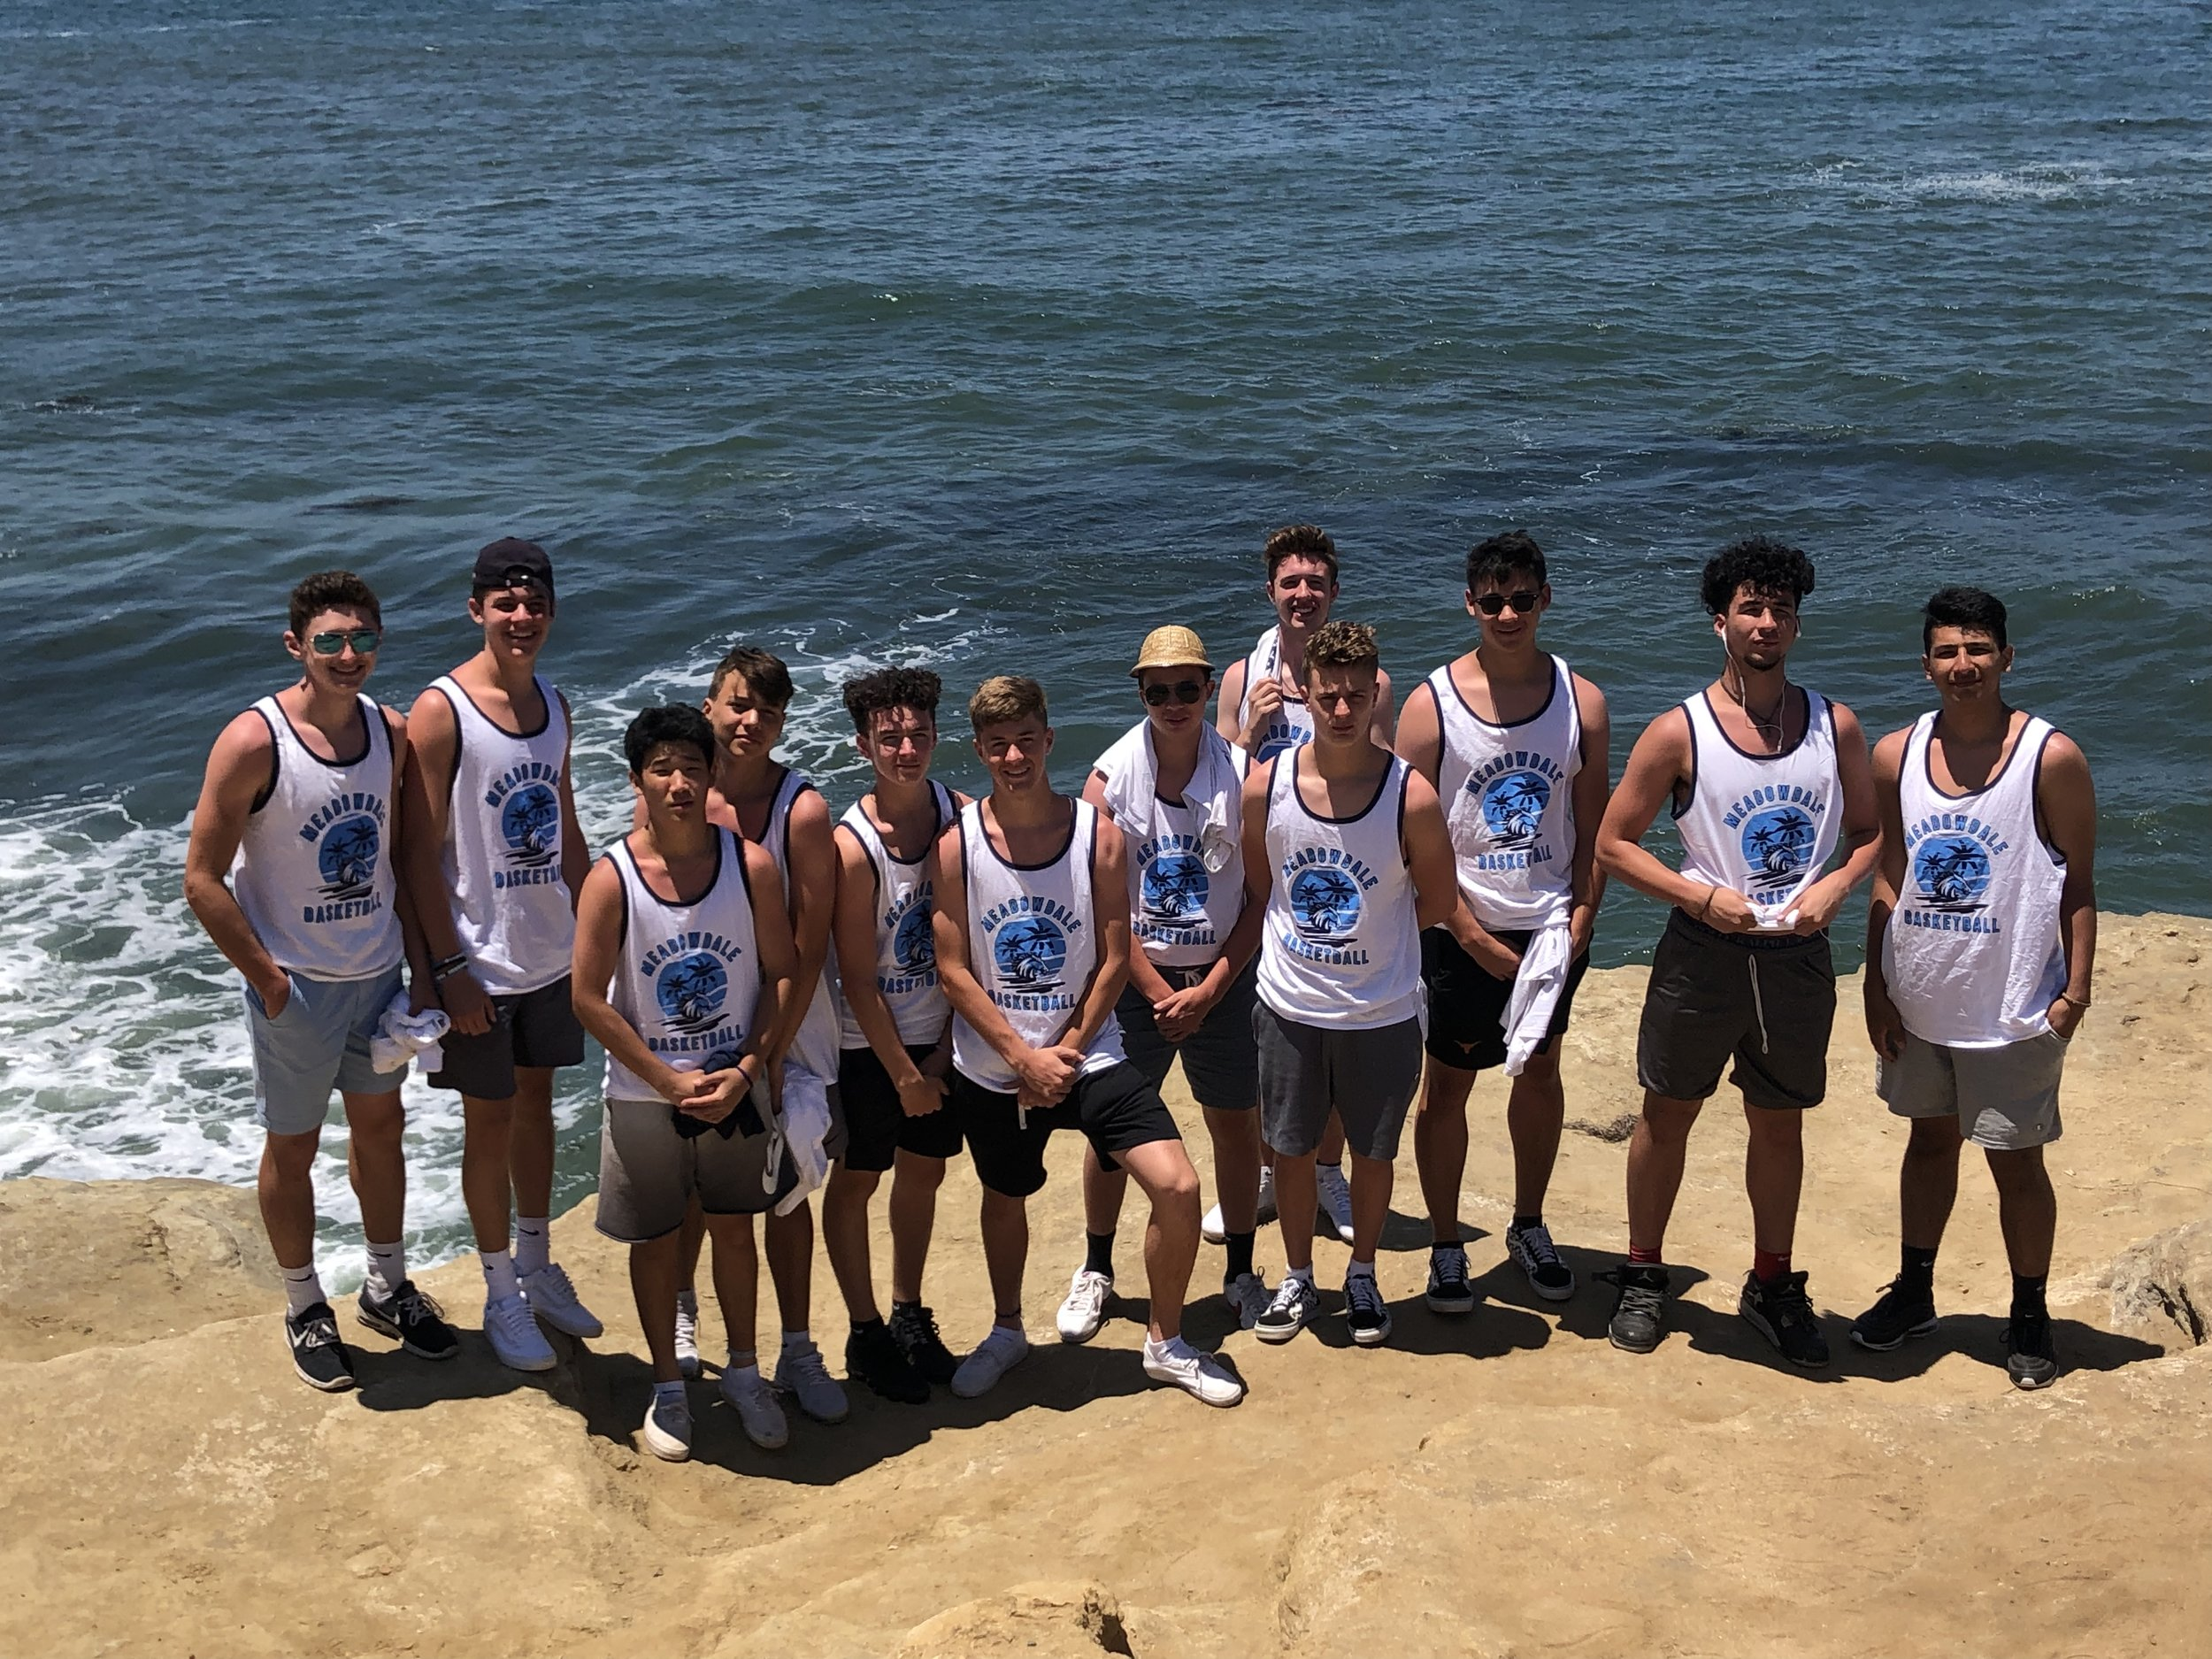 TUE: Team Bro-Tanks being shown off at Sunset Cliffs in Ocean Beach.